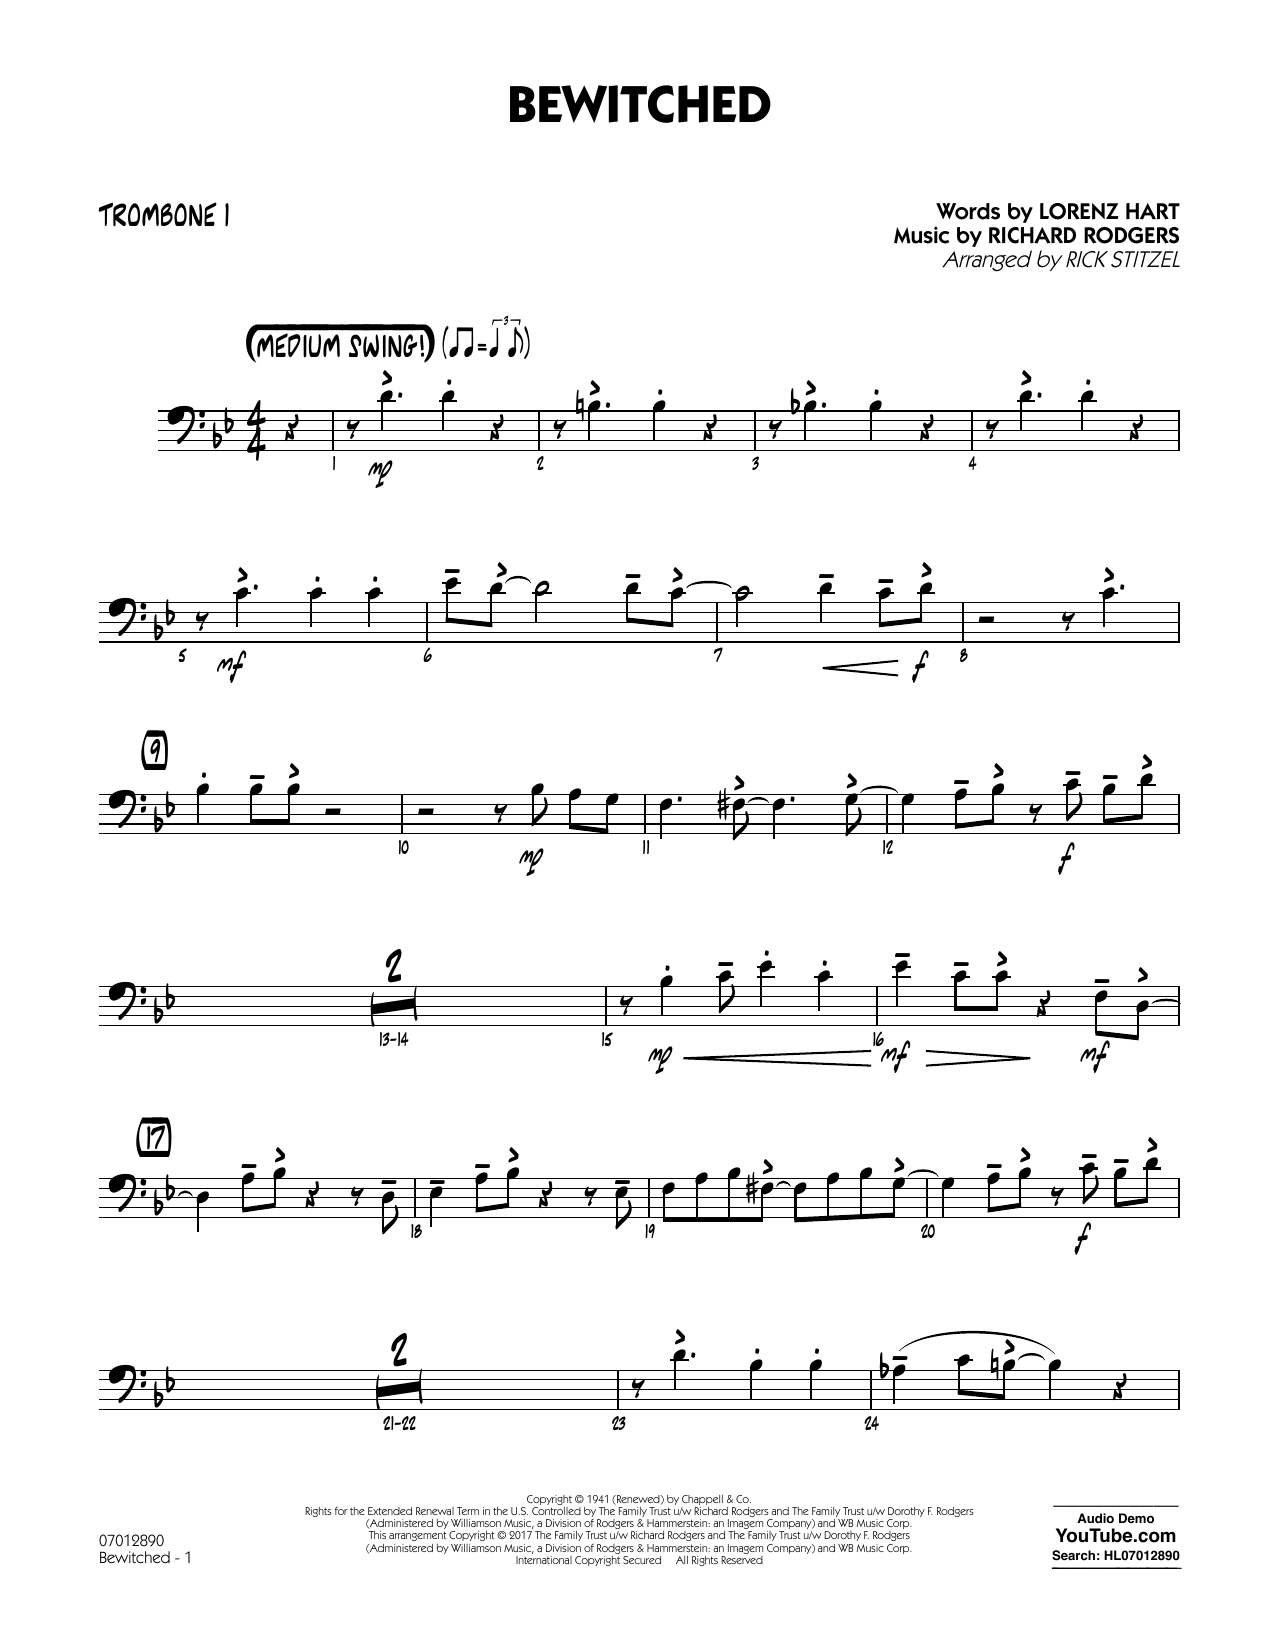 Bewitched - Trombone 1 Sheet Music